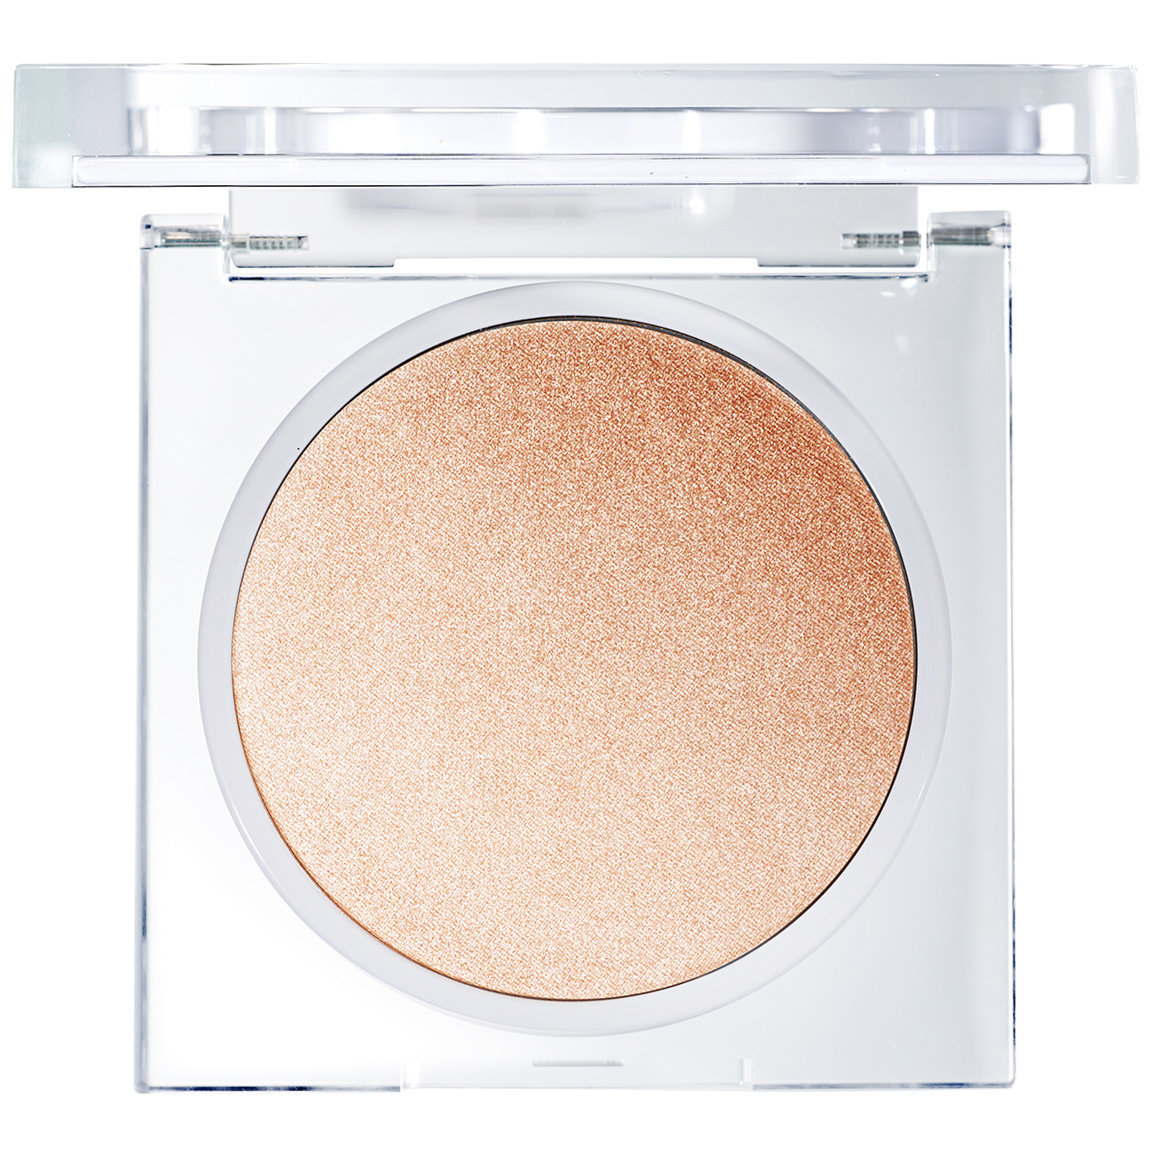 rms beauty Luminizing Powder Grande Dame alternative view 1 - product swatch.